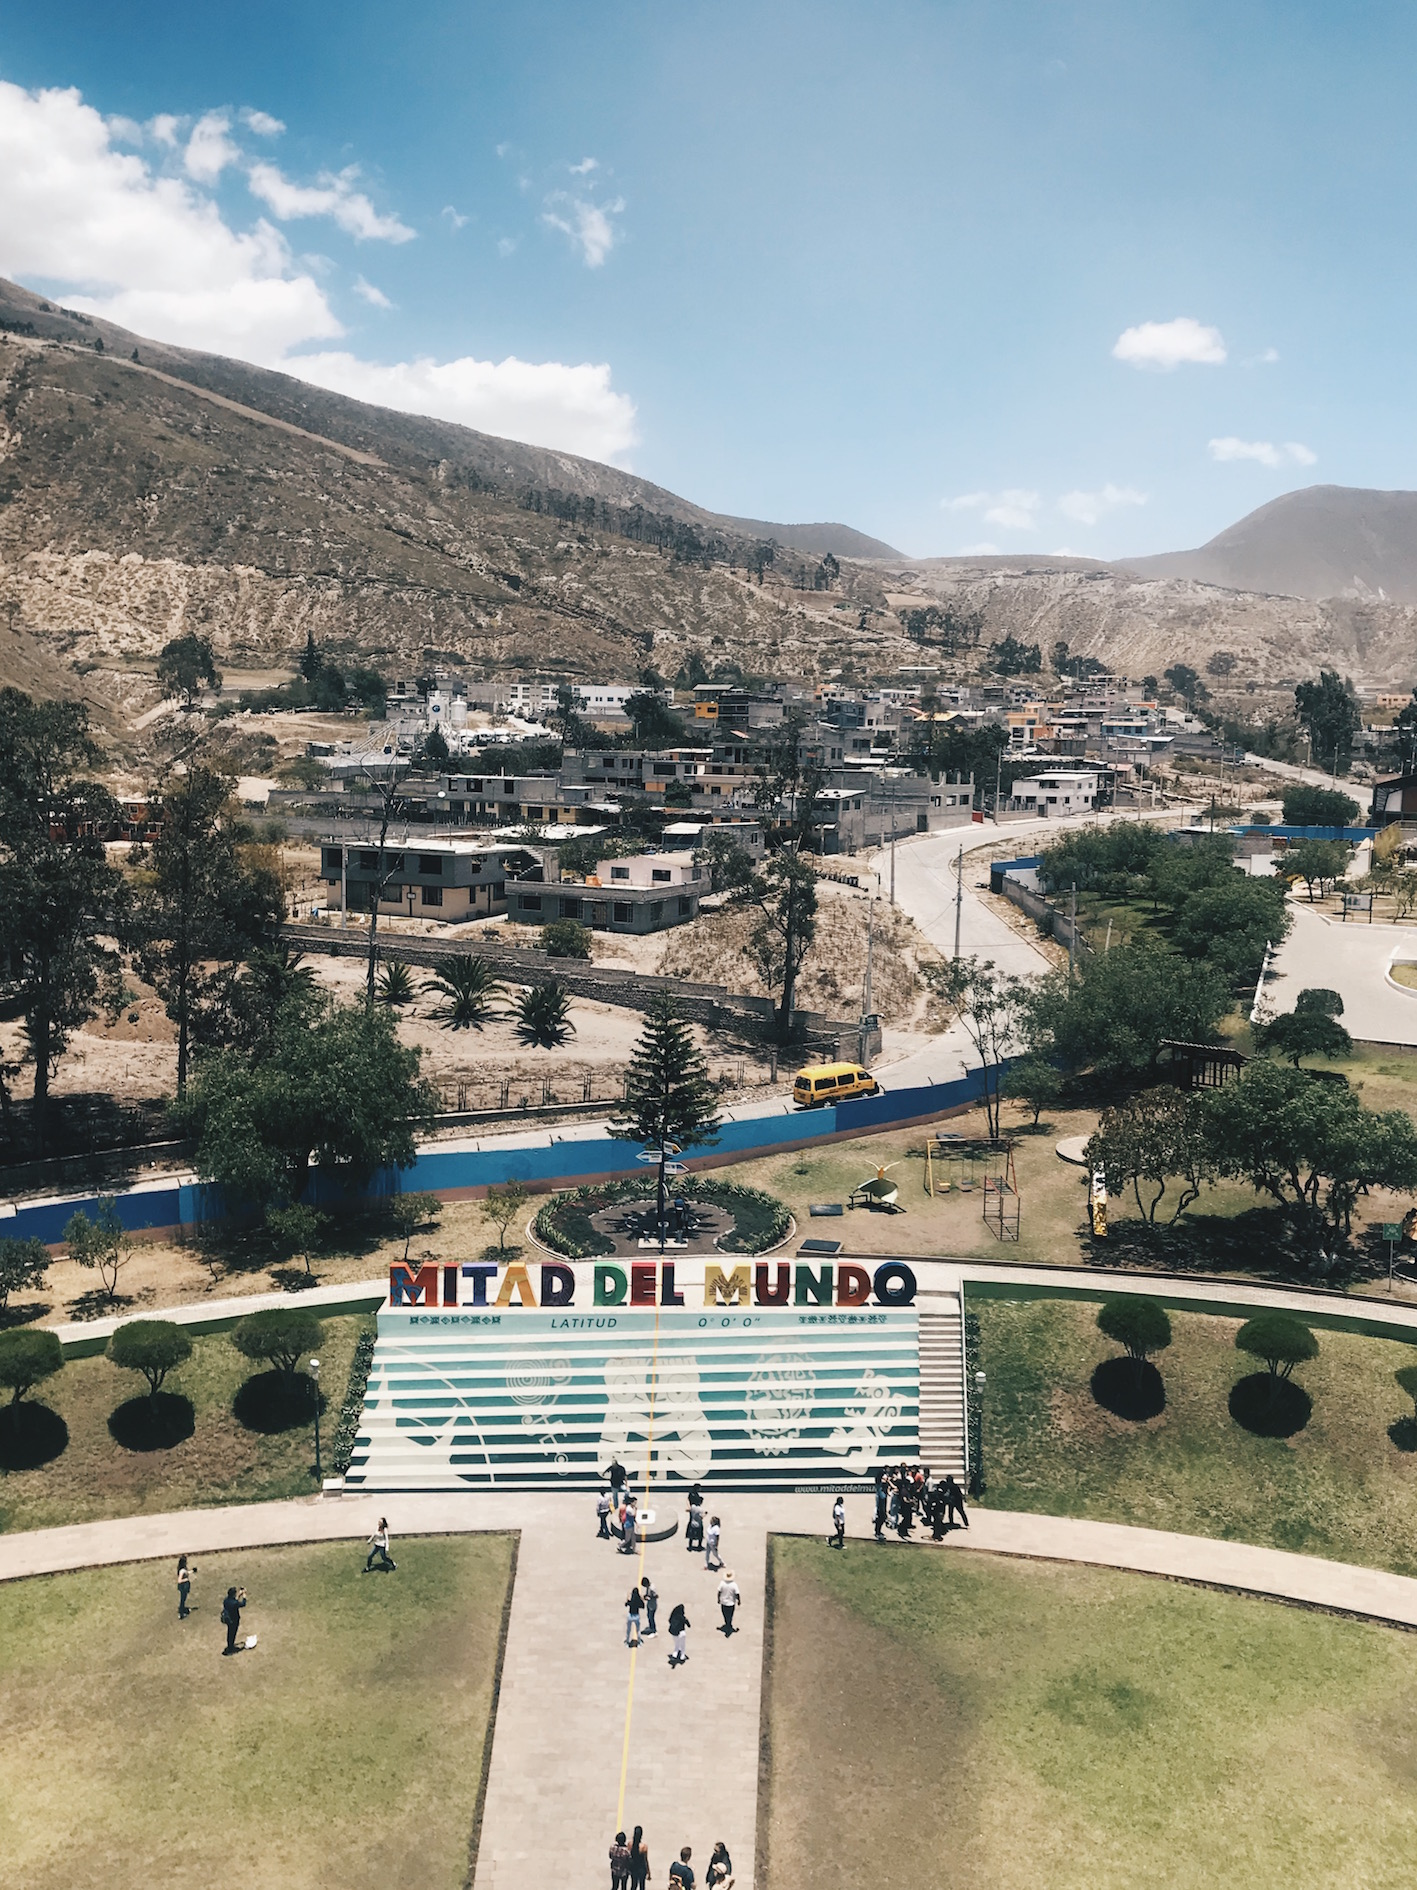 long shot of the town and hills view with colourful sign saying 'mitar del mundo'